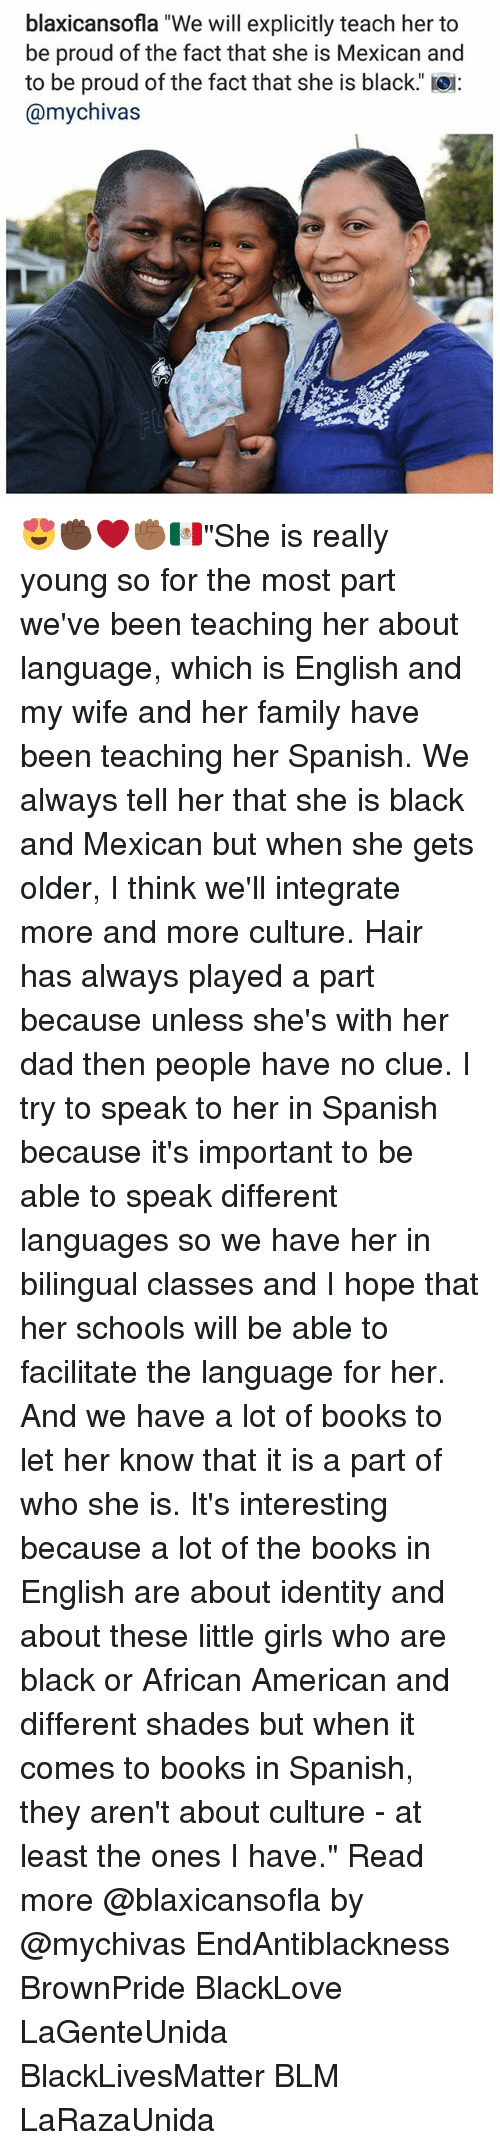 """integrate: blaxicansofla """"We will explicitly teach her to  be proud of the fact that she is Mexican and  to be proud of the fact that she is black.  @mychivas 😍✊🏿❤✊🏾🇲🇽""""She is really young so for the most part we've been teaching her about language, which is English and my wife and her family have been teaching her Spanish. We always tell her that she is black and Mexican but when she gets older, I think we'll integrate more and more culture. Hair has always played a part because unless she's with her dad then people have no clue. I try to speak to her in Spanish because it's important to be able to speak different languages so we have her in bilingual classes and I hope that her schools will be able to facilitate the language for her. And we have a lot of books to let her know that it is a part of who she is. It's interesting because a lot of the books in English are about identity and about these little girls who are black or African American and different shades but when it comes to books in Spanish, they aren't about culture - at least the ones I have."""" Read more @blaxicansofla by @mychivas EndAntiblackness BrownPride BlackLove LaGenteUnida BlackLivesMatter BLM LaRazaUnida"""